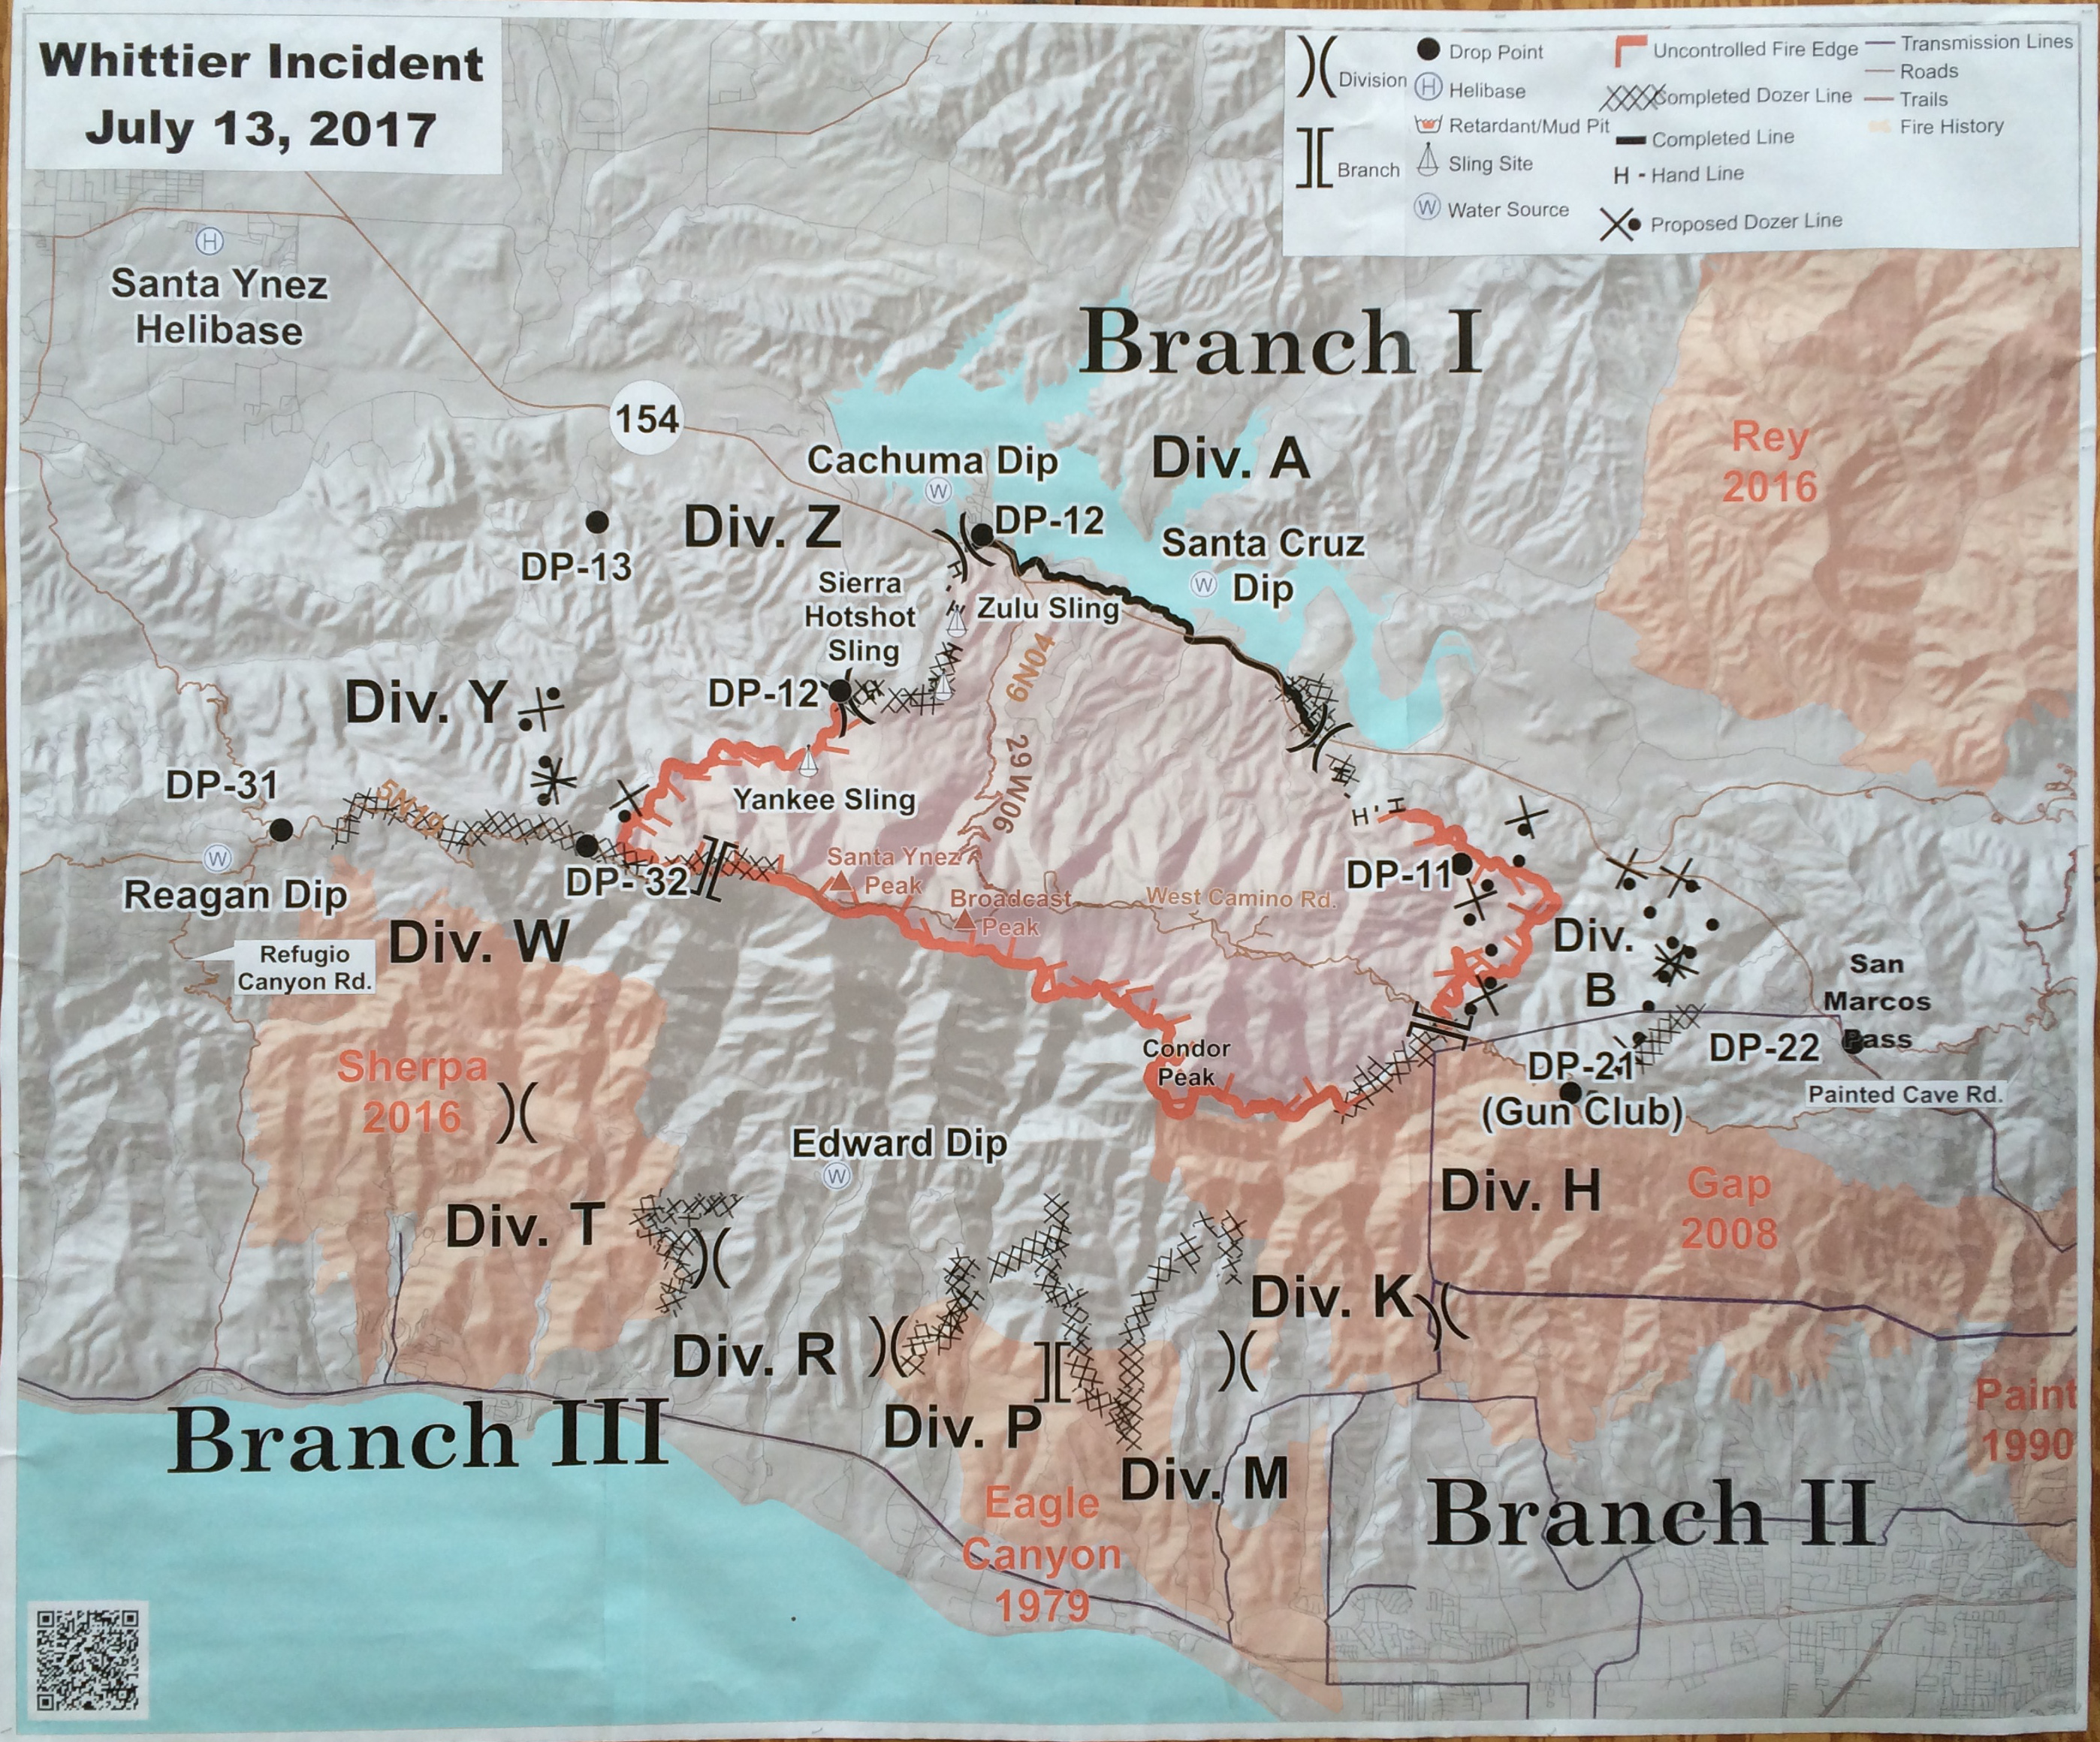 Florida Fire Map 2017.Blue Skies Over Whittier Fire